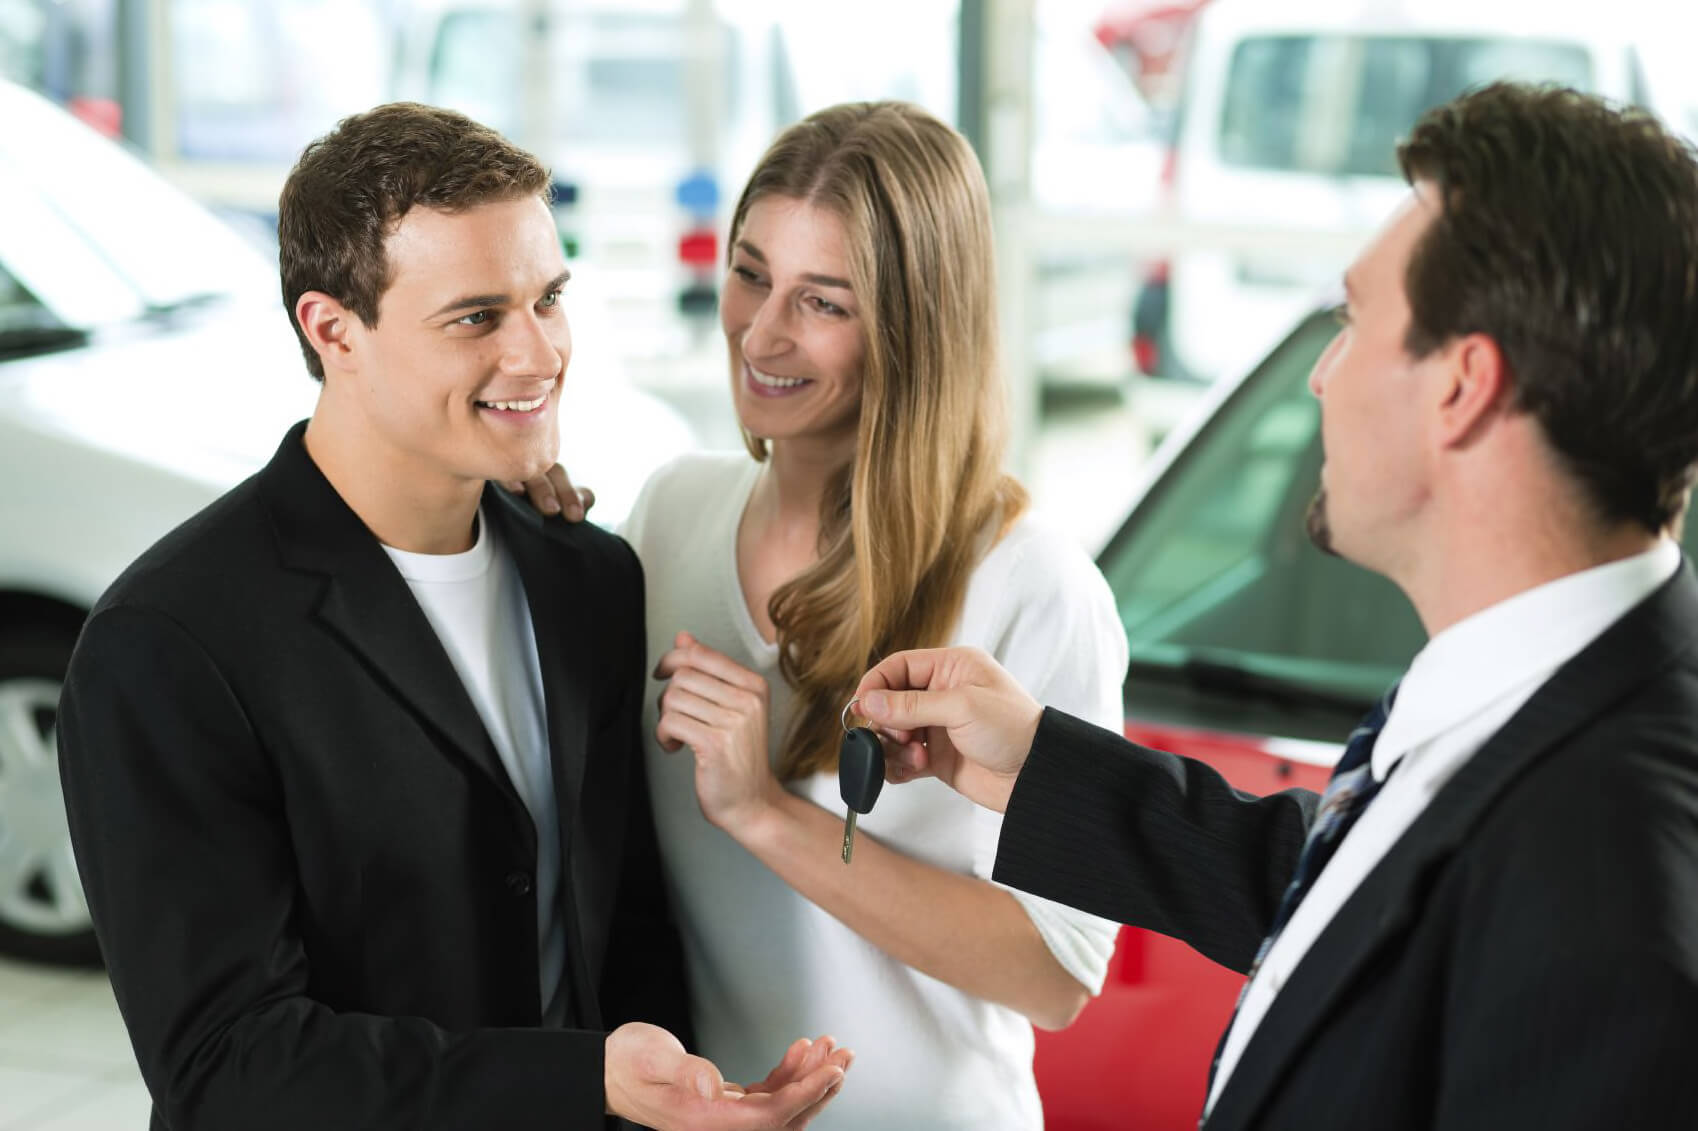 Apply for credit challenged finance at our Nissan dealership.